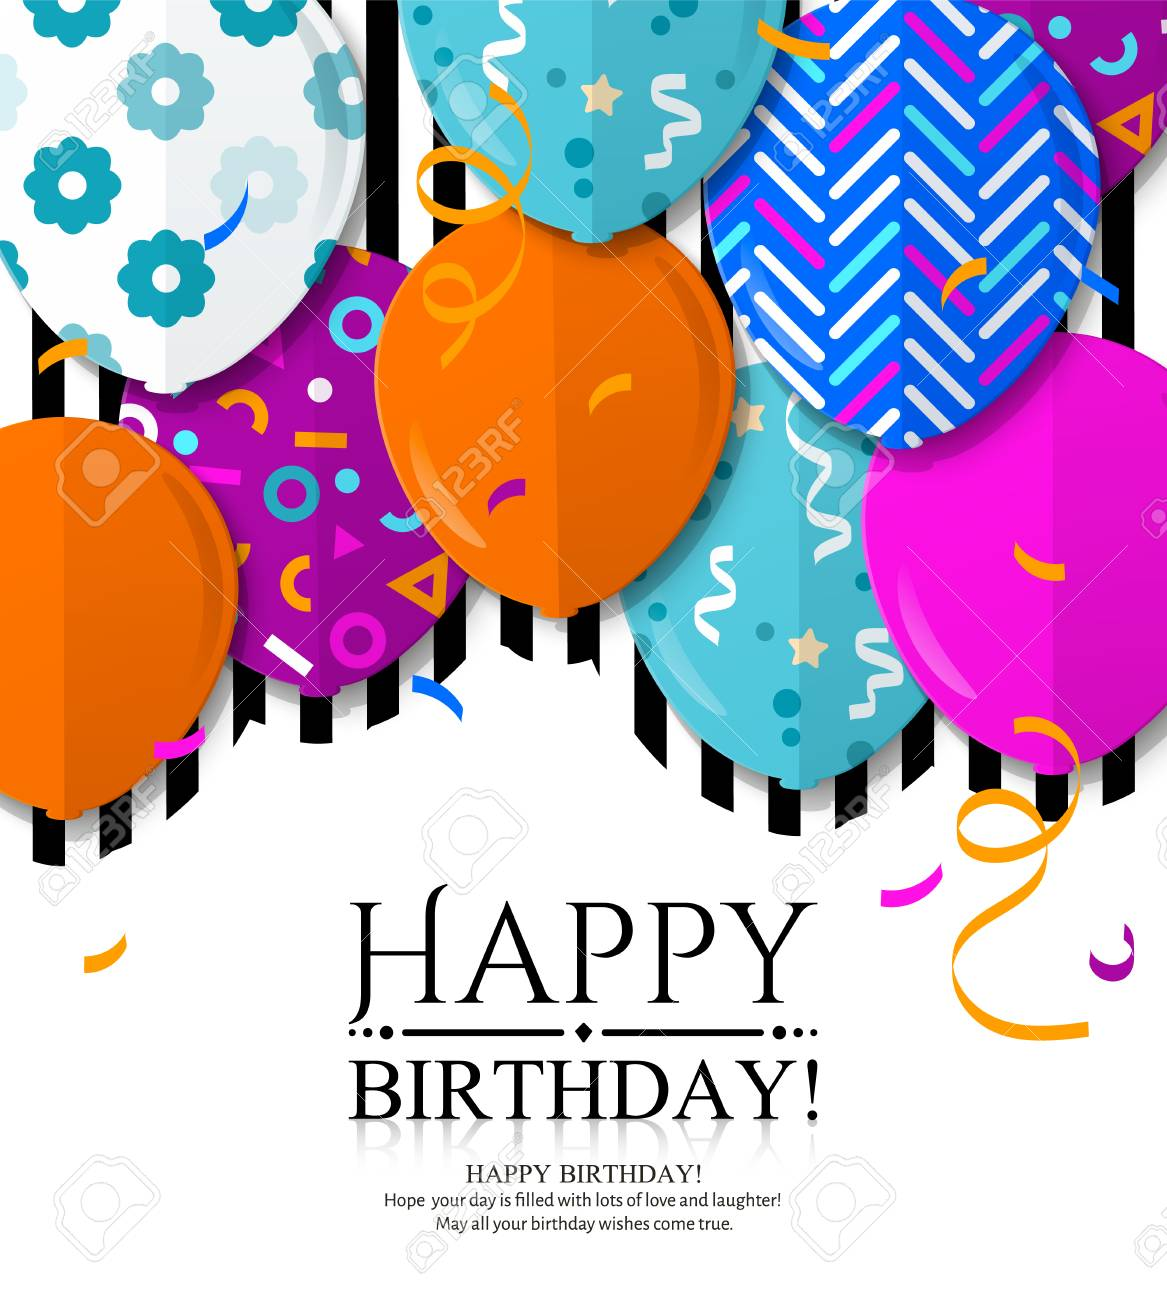 Happy Birthday greeting card with patterned balloons in flat style. Confetti and black stripes on background. Vector. - 120210682